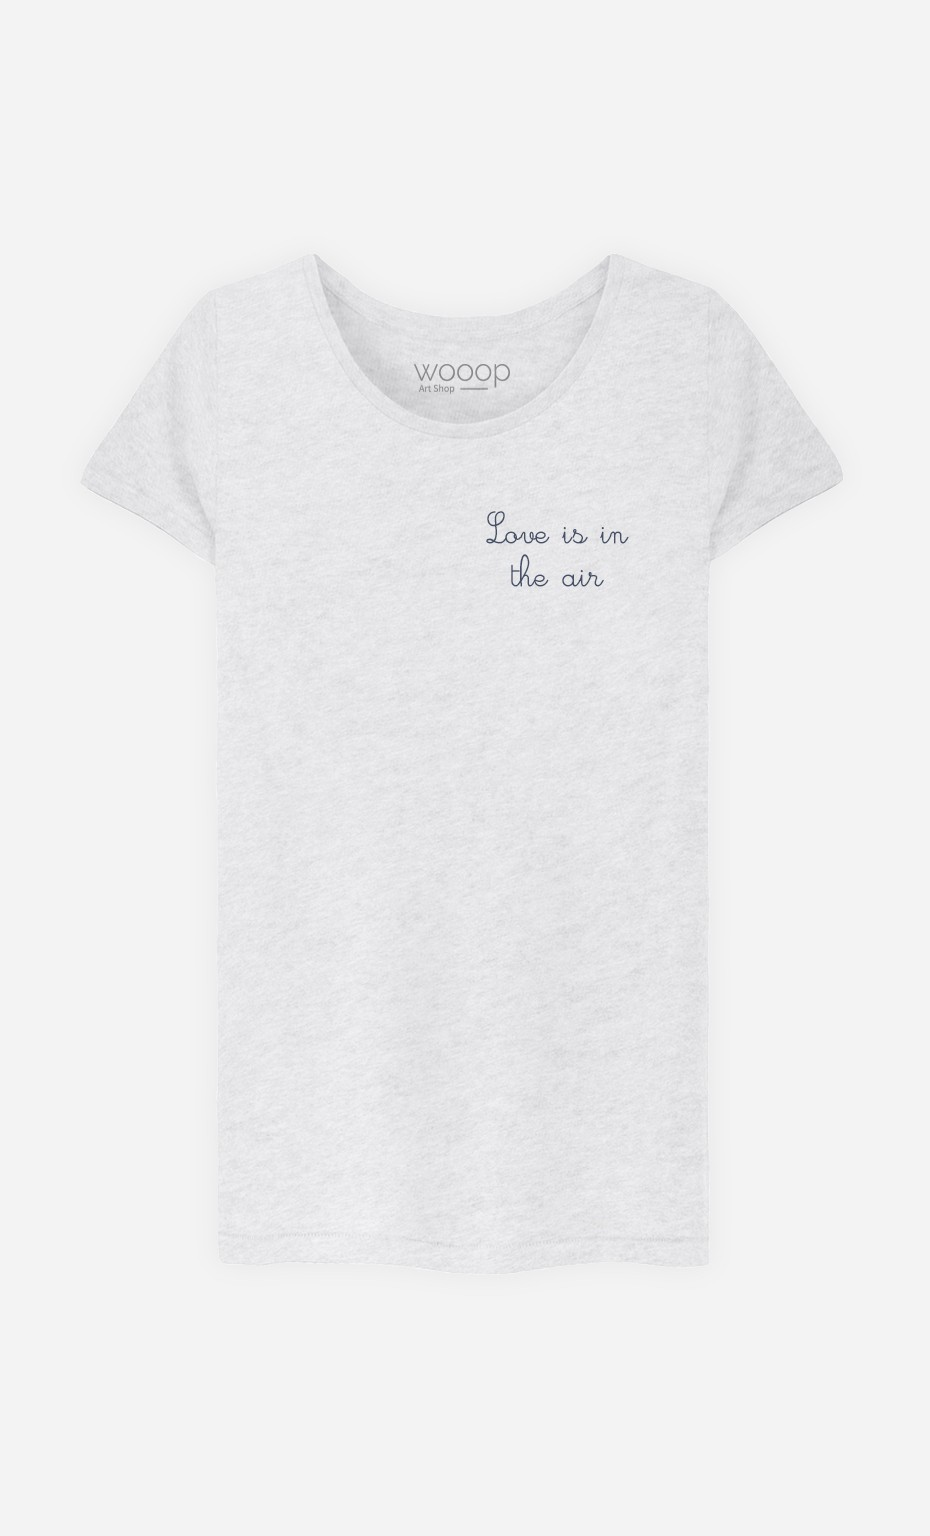 T-Shirt Femme Love is in The Air - Brodé